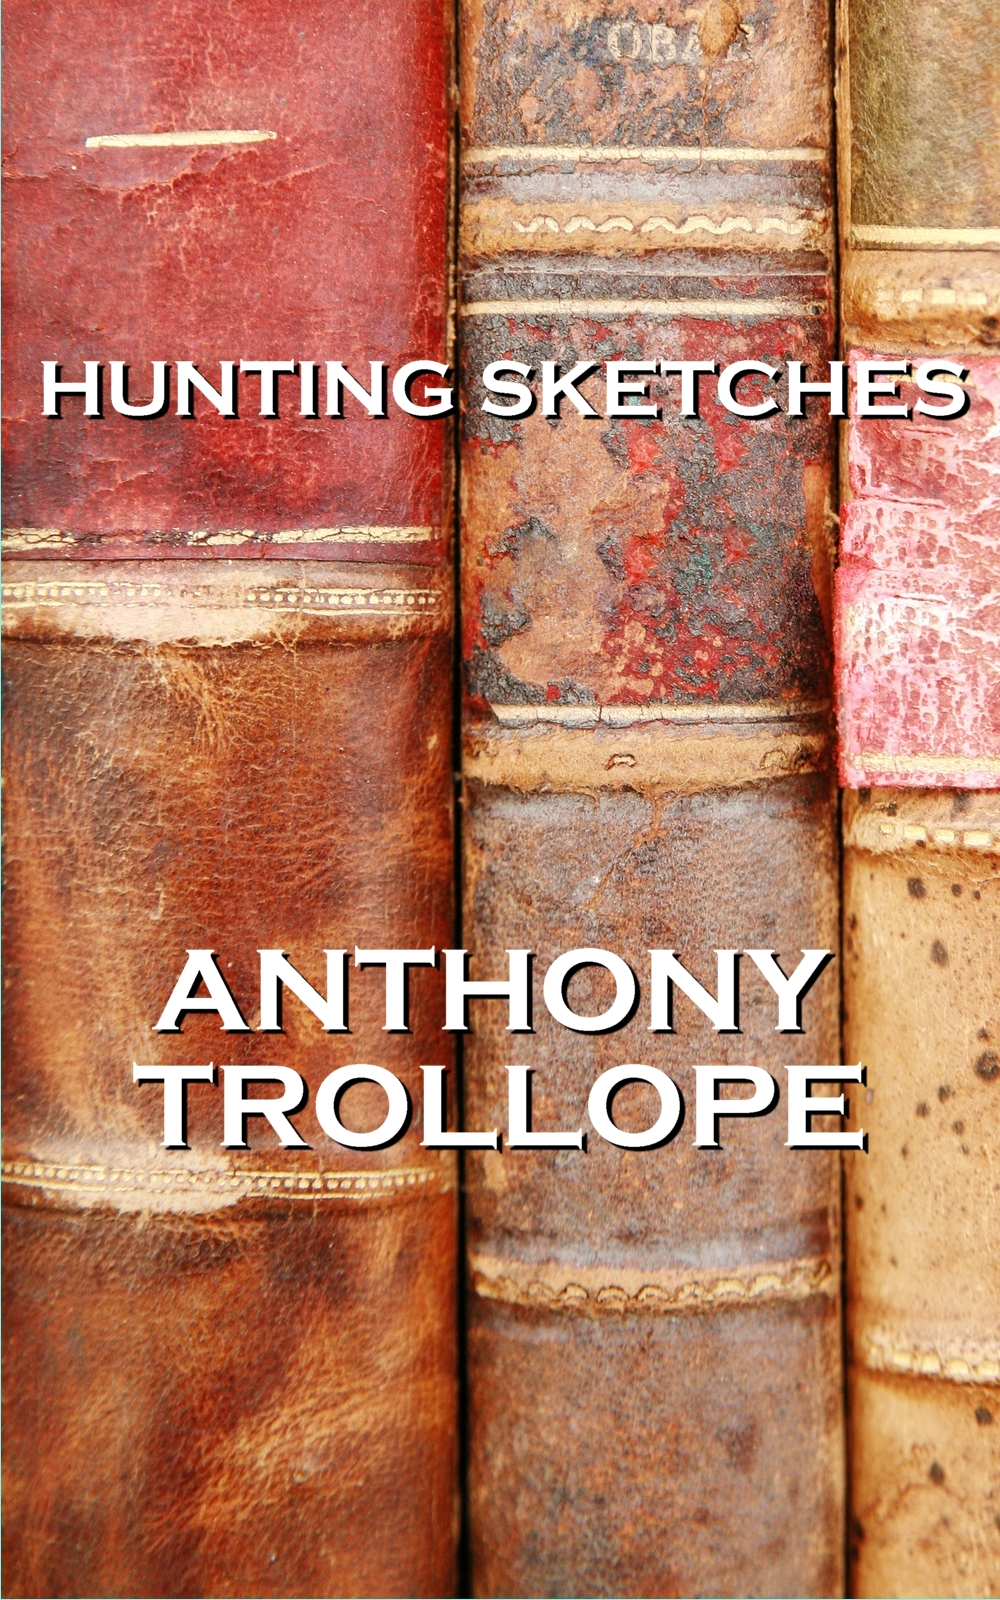 Hunting Sketches, By Anthony Trollope